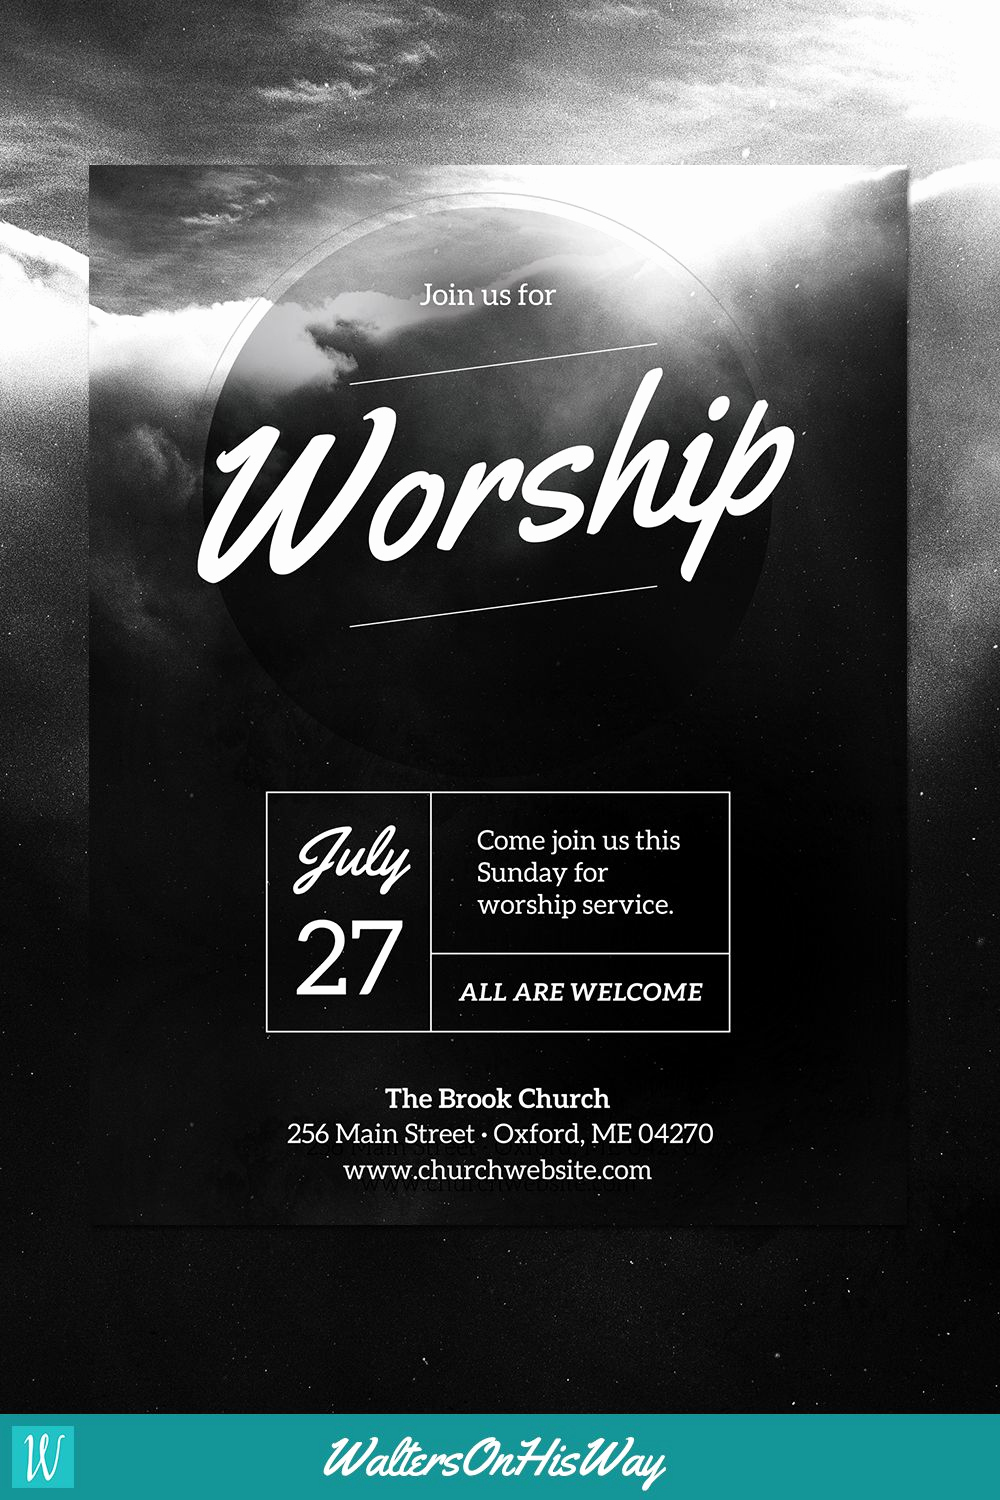 Event Flyer Templates Free Fresh Diy Church event Flyer Template Heavenly Worship for